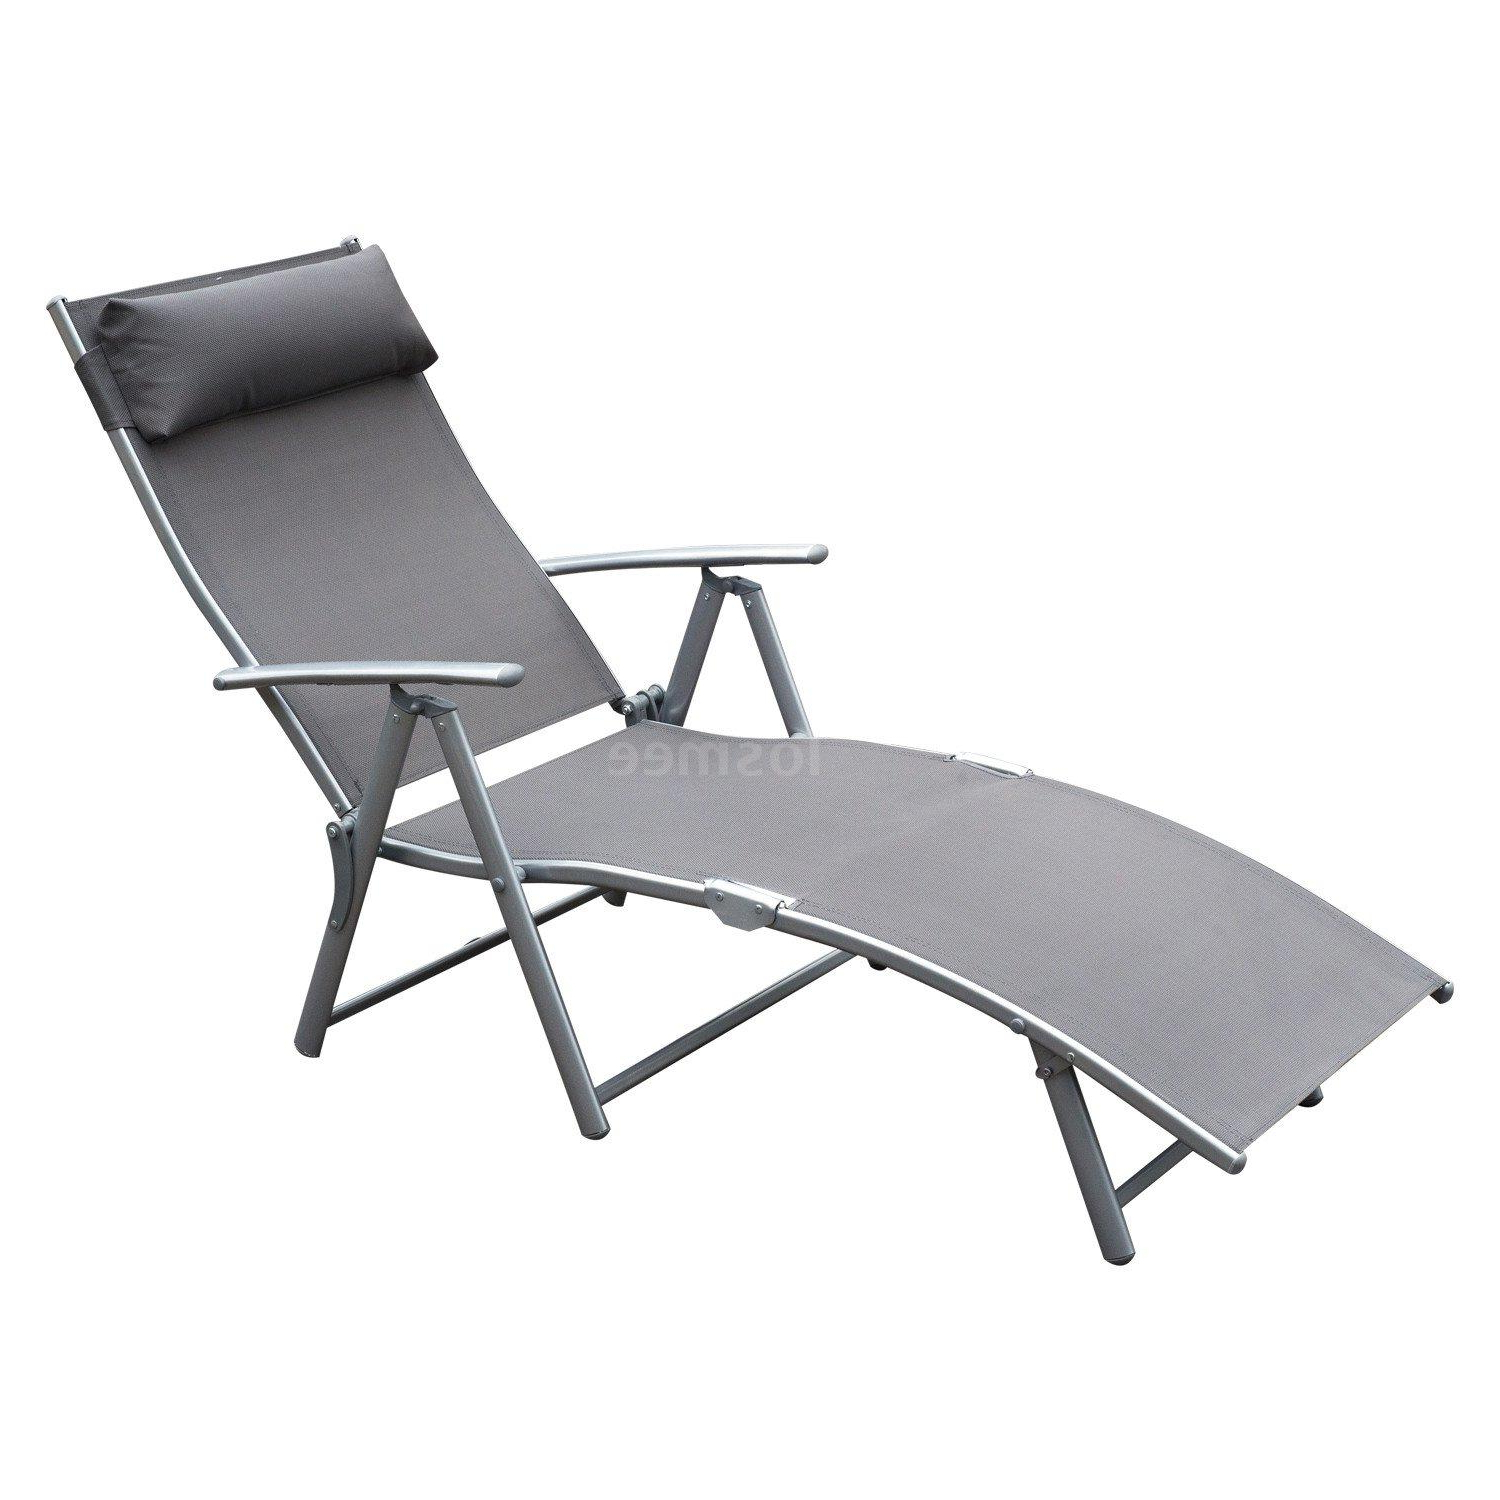 Details About Steel Sling Fabric Outdoor Folding Chaise Lounge Chair Recliner – Grey Y4l1 Throughout Famous Black Sling Fabric Adjustable Chaise Lounges (Gallery 23 of 25)